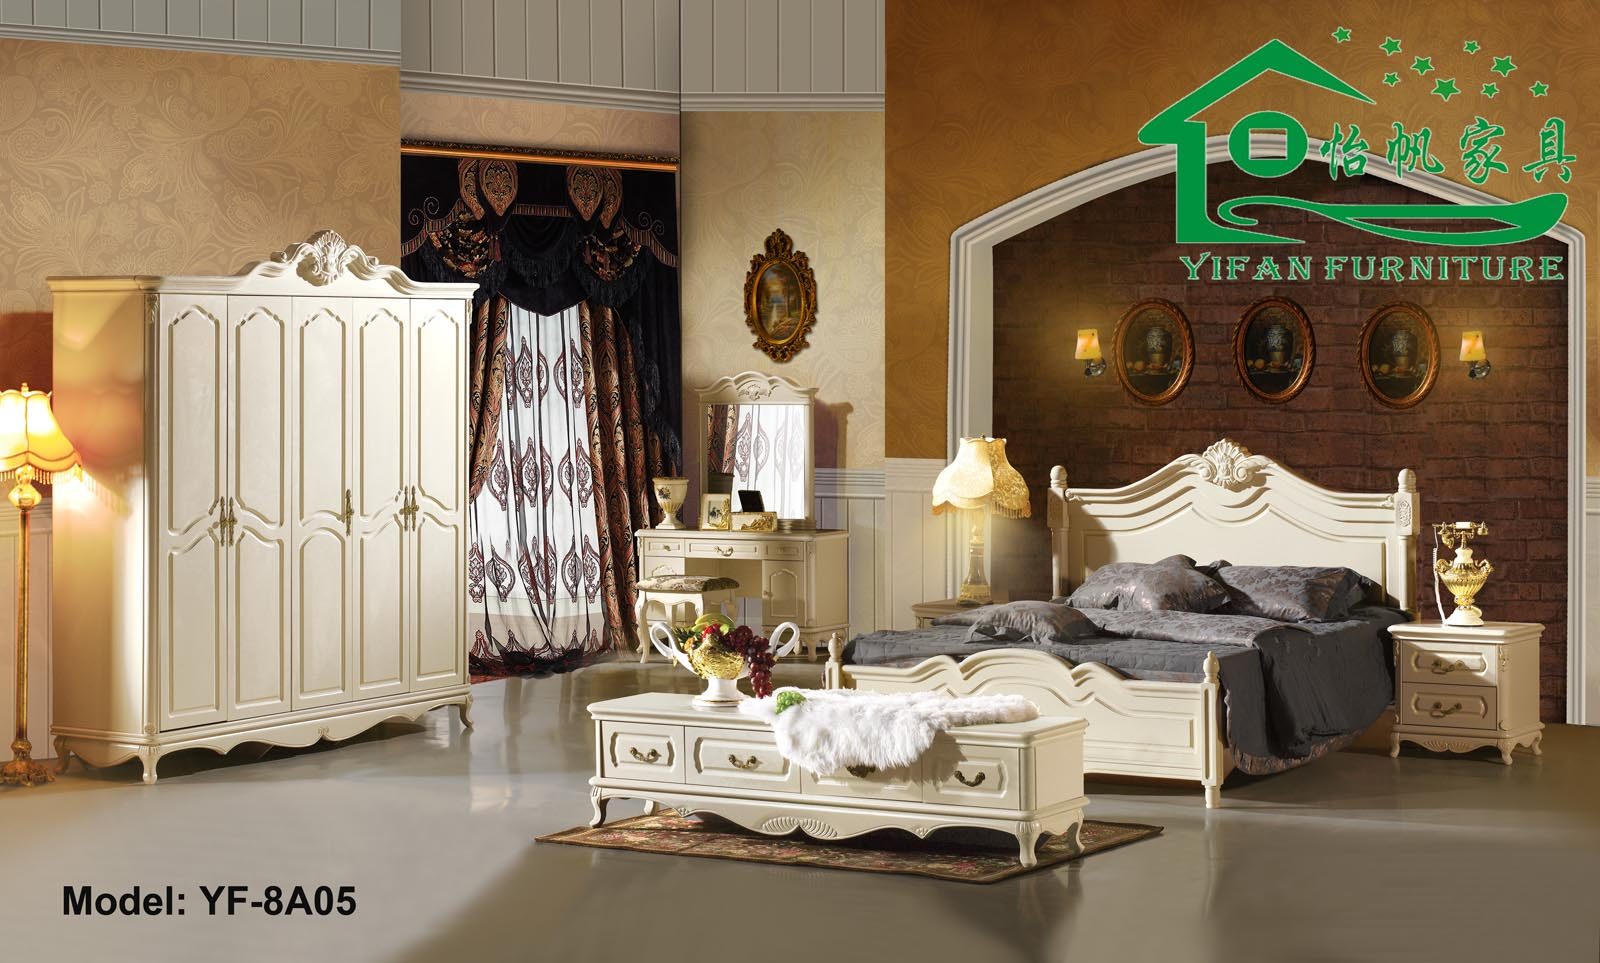 Photos of New Design Furniture Bedroom. New design furniture new designs of bedroom furniture